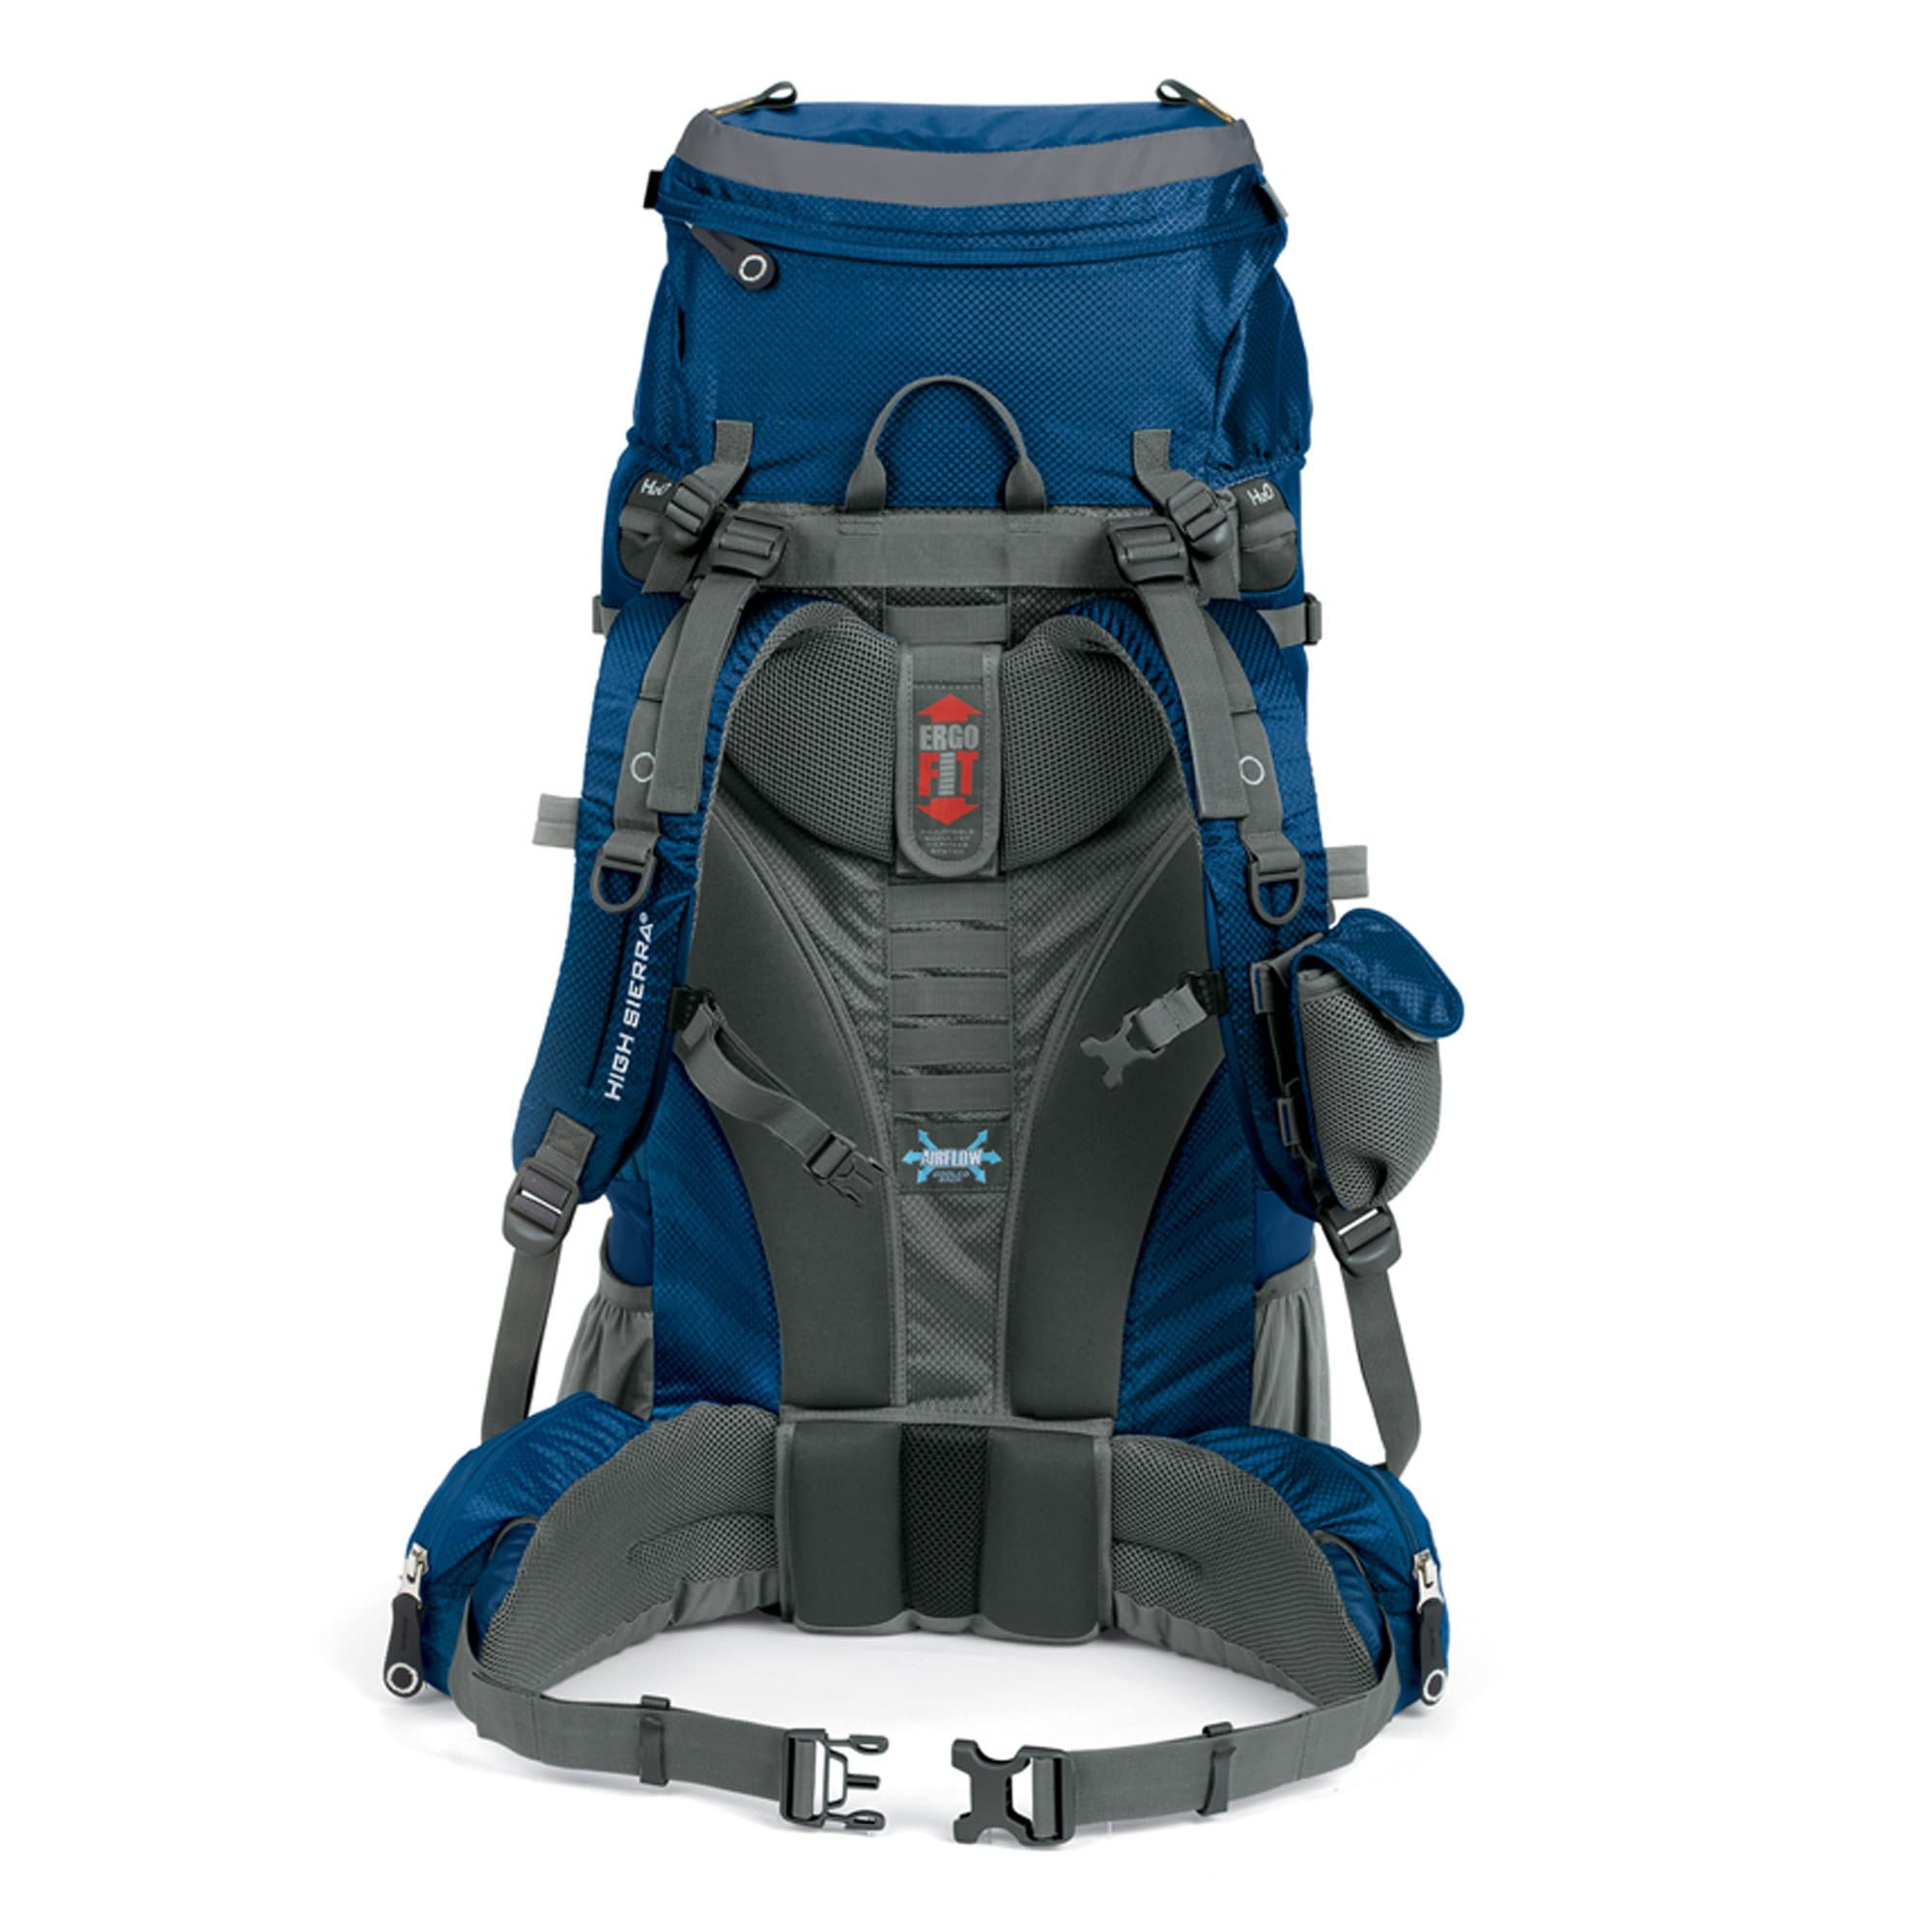 7a4f1a24e390 Shop High Sierra Titan 65L Internal Frame Backpack - Free Shipping Today -  Overstock - 6514419